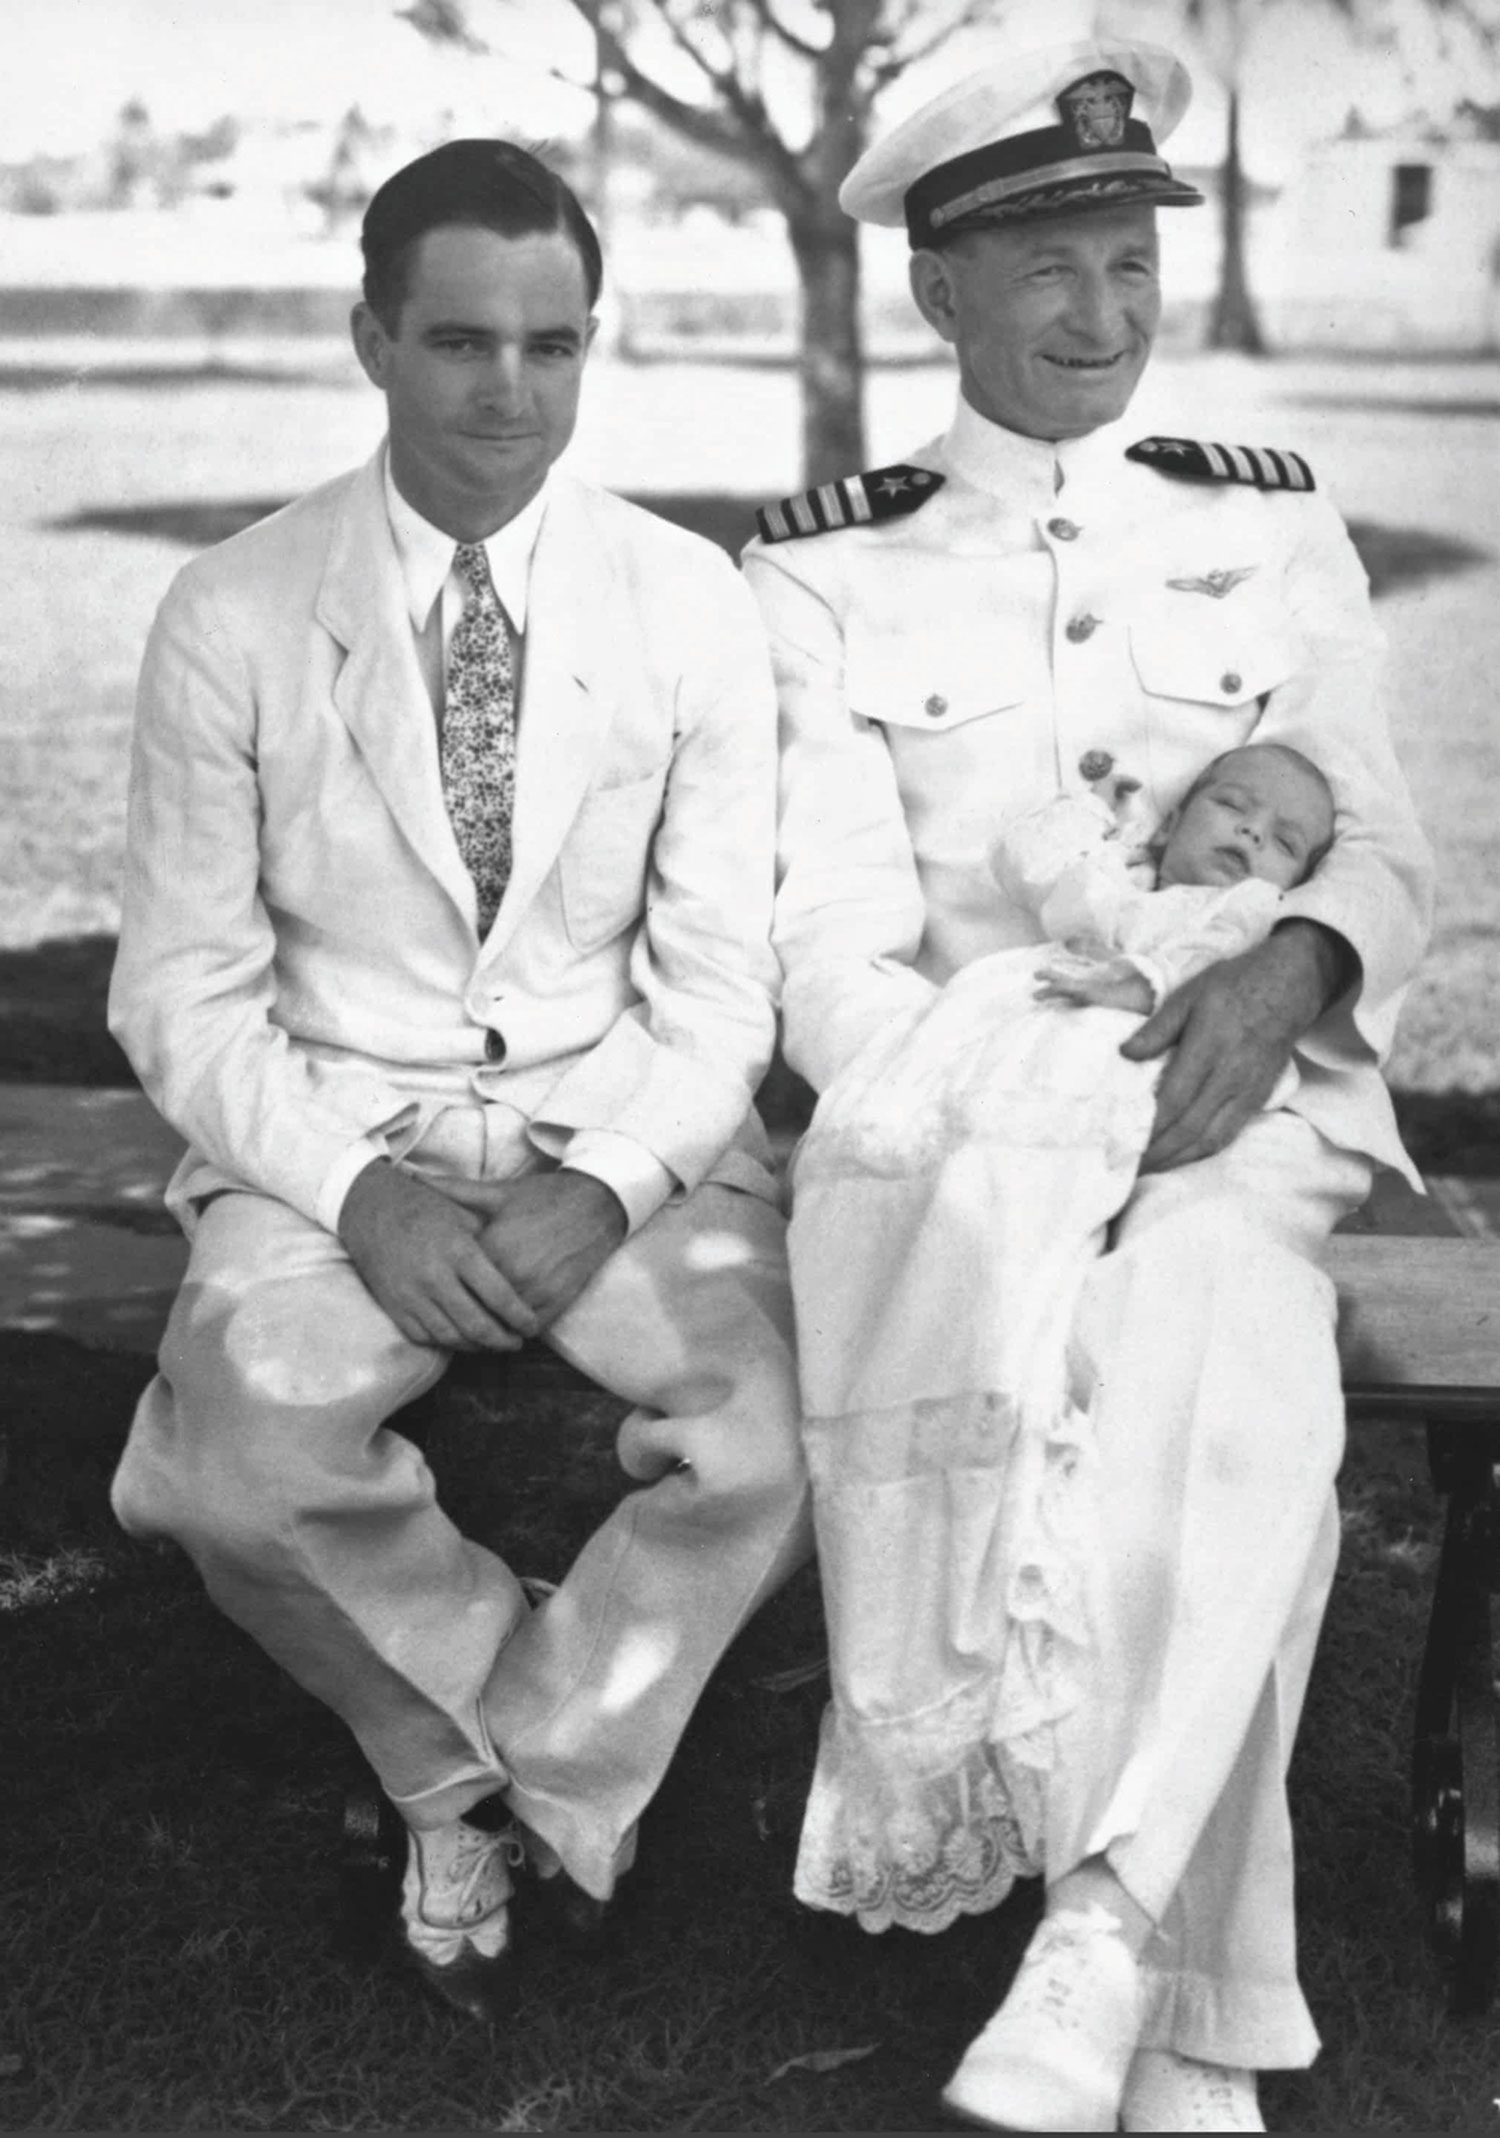 McCain as an infant with grandfather John Sidney McCain Sr. and father John Sidney McCain Jr. in 1936